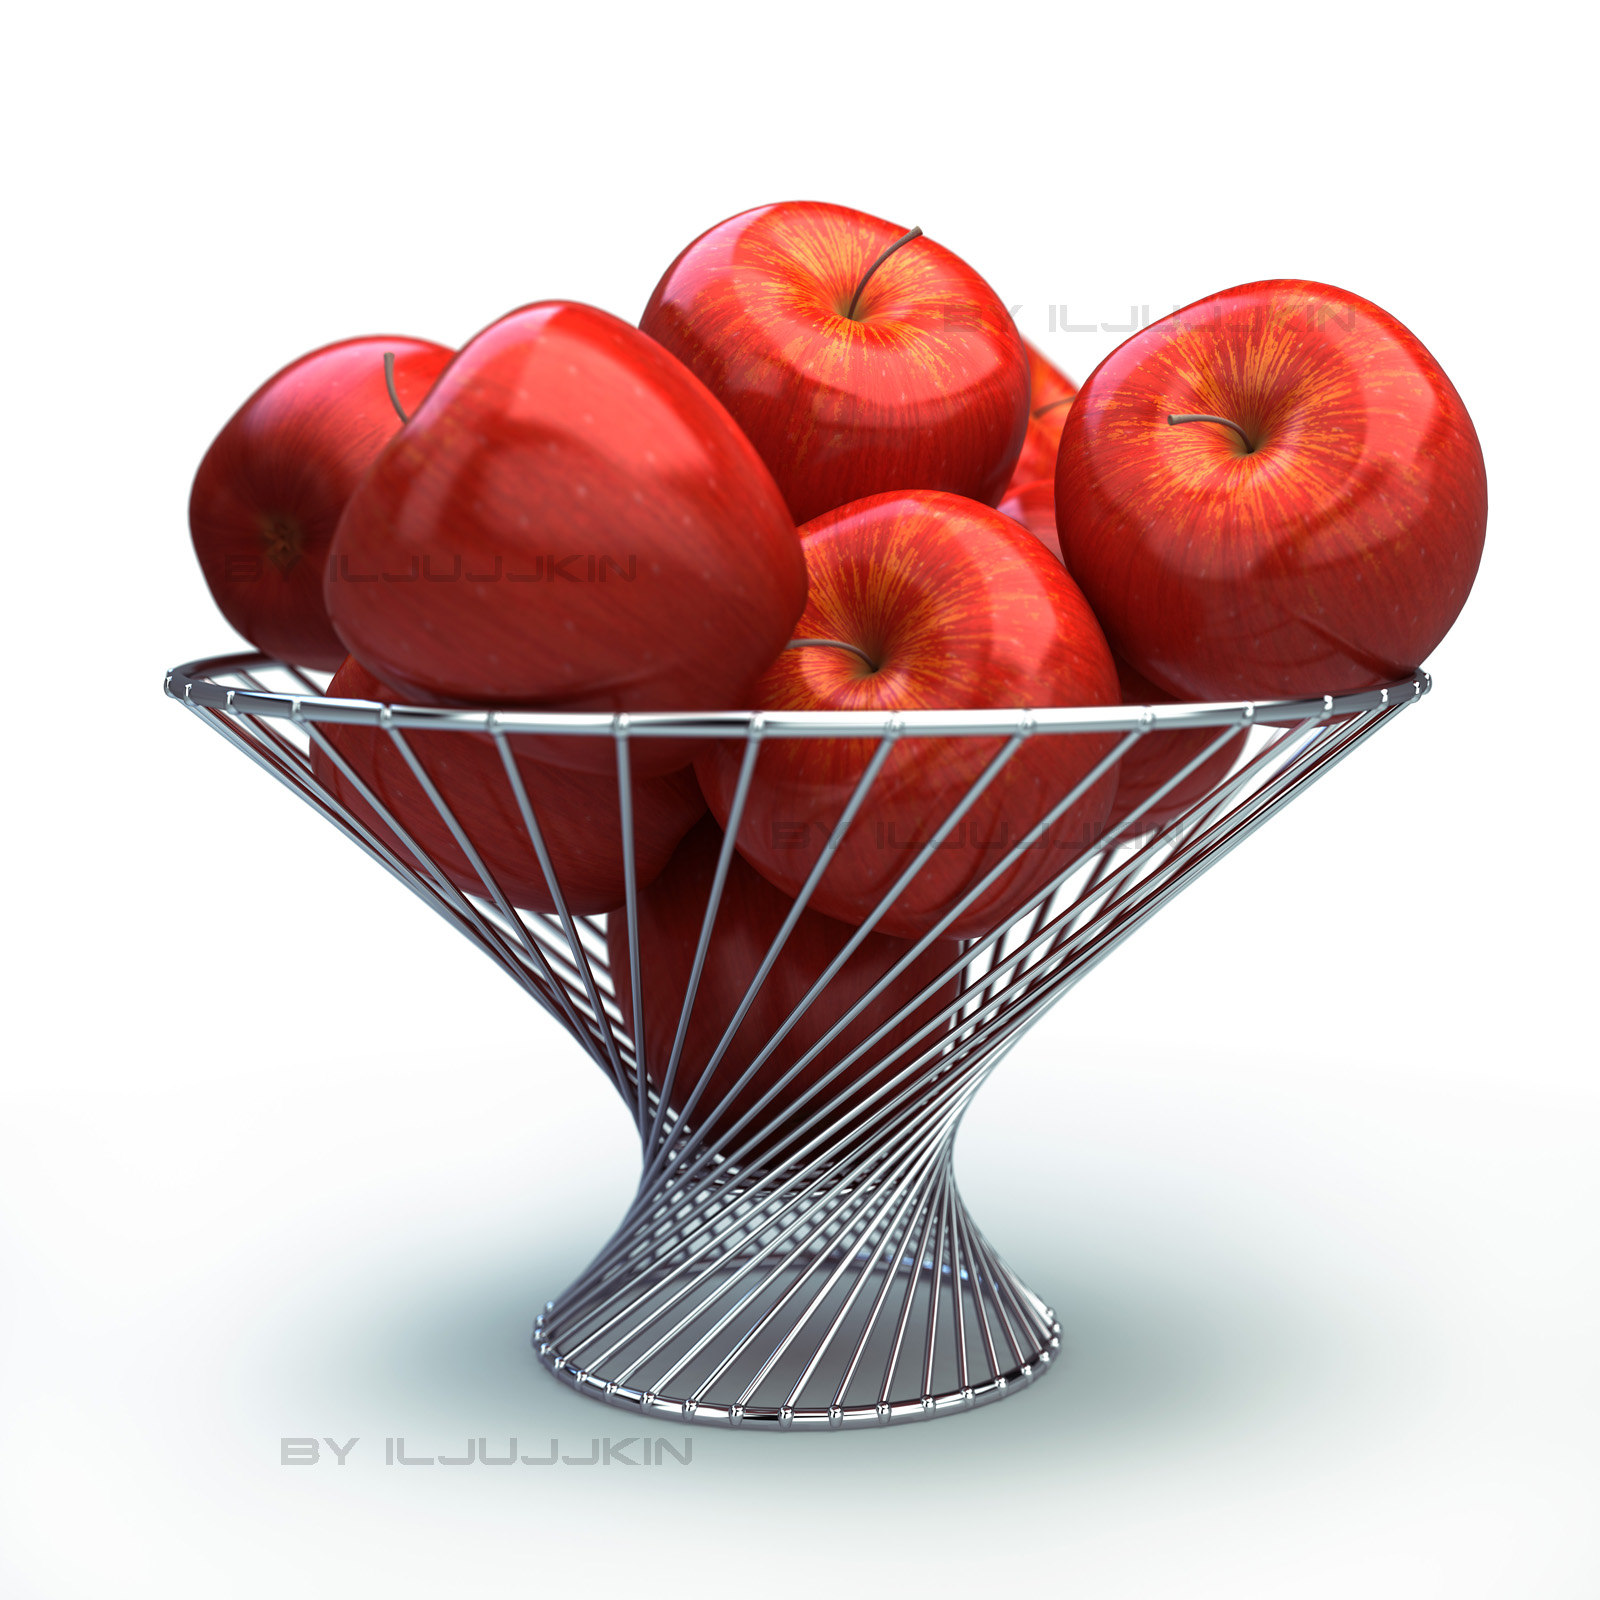 Basket_apple_red_2_vat.jpg